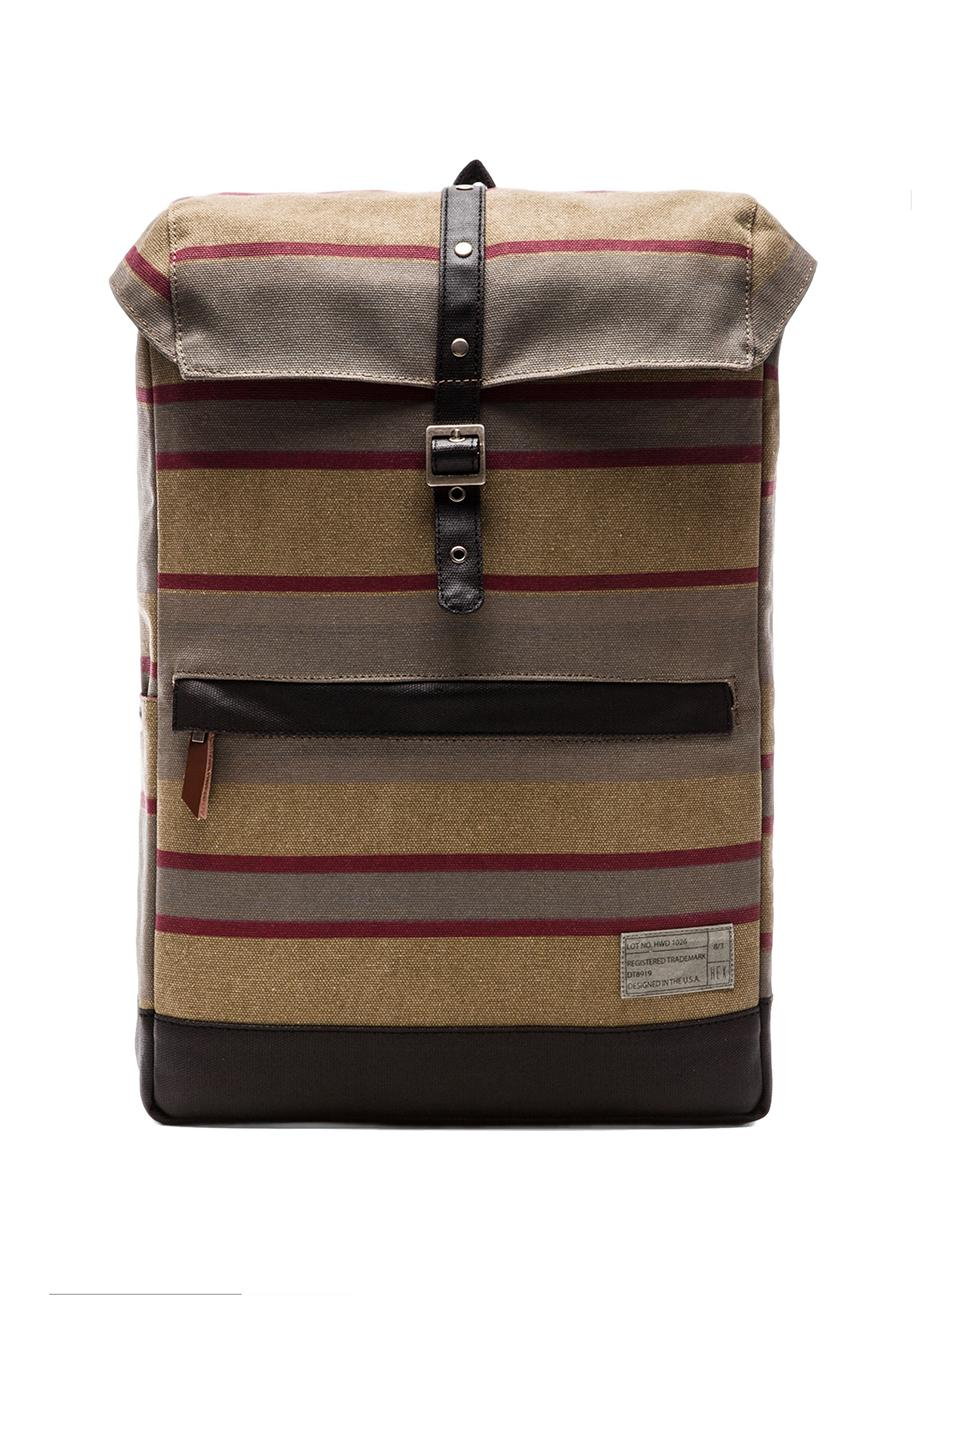 HEX Alliance Backpack in Khaki Stripe